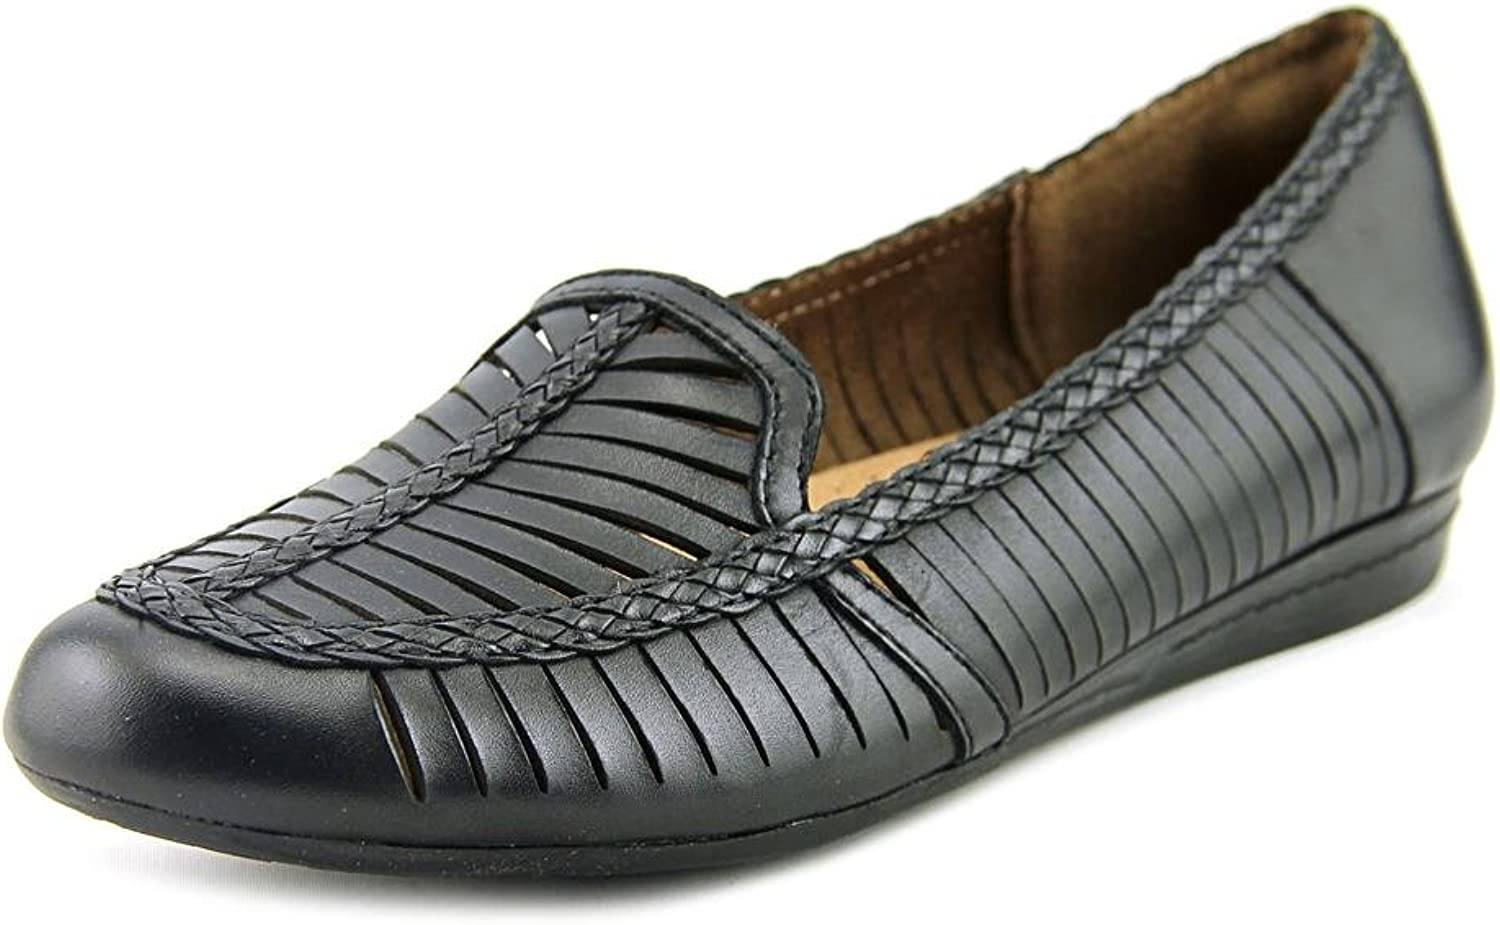 Rockport Cobb Hill Collection Womens Galway Woven Loafer